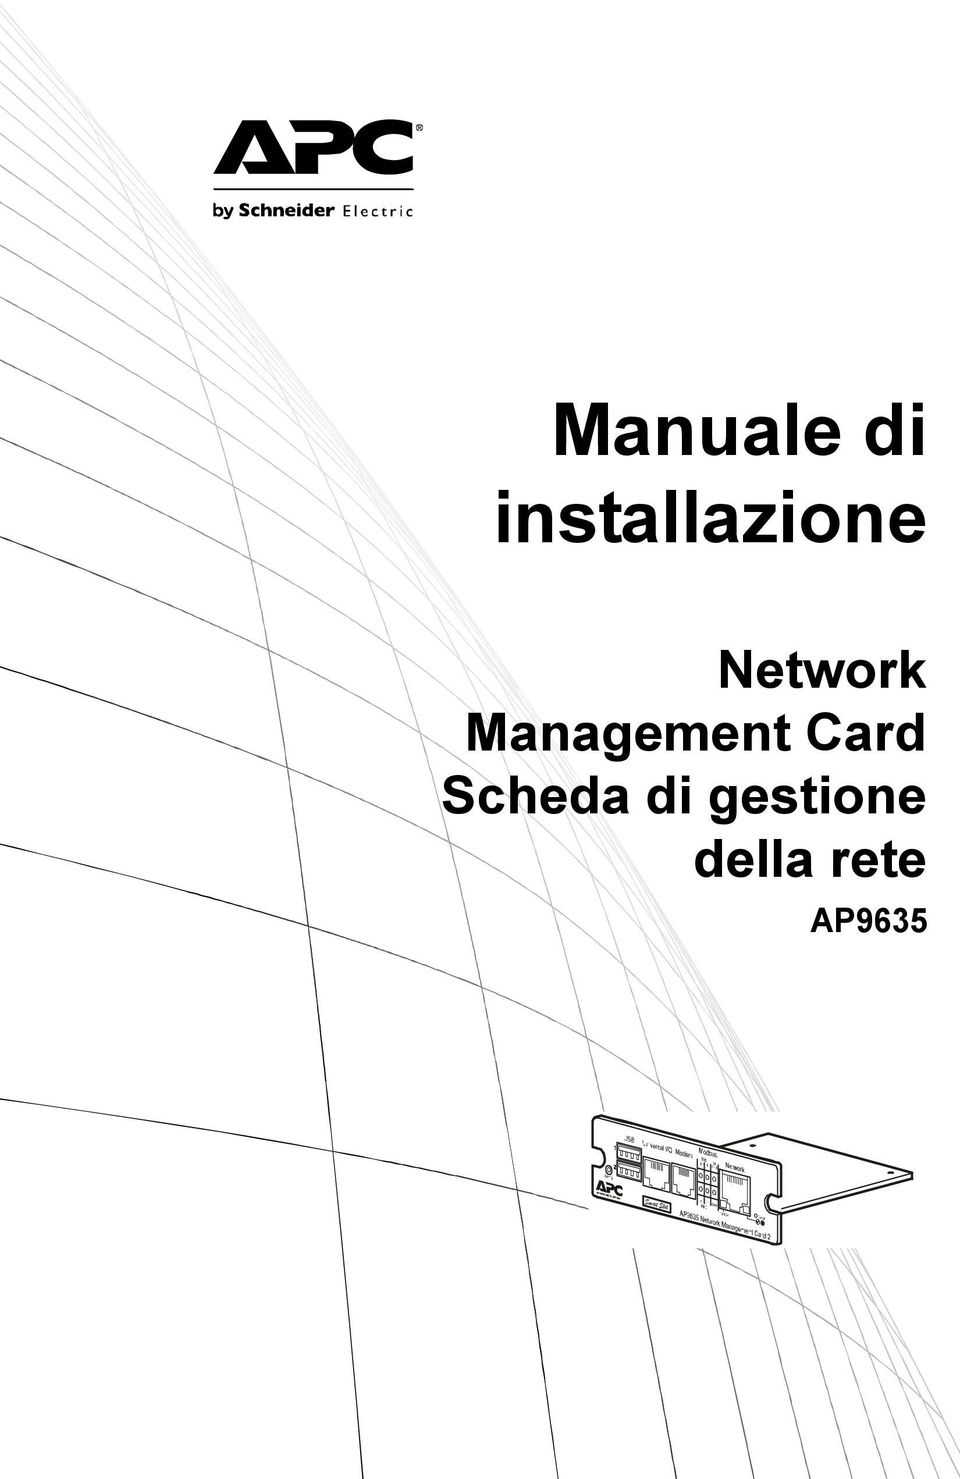 Management Card